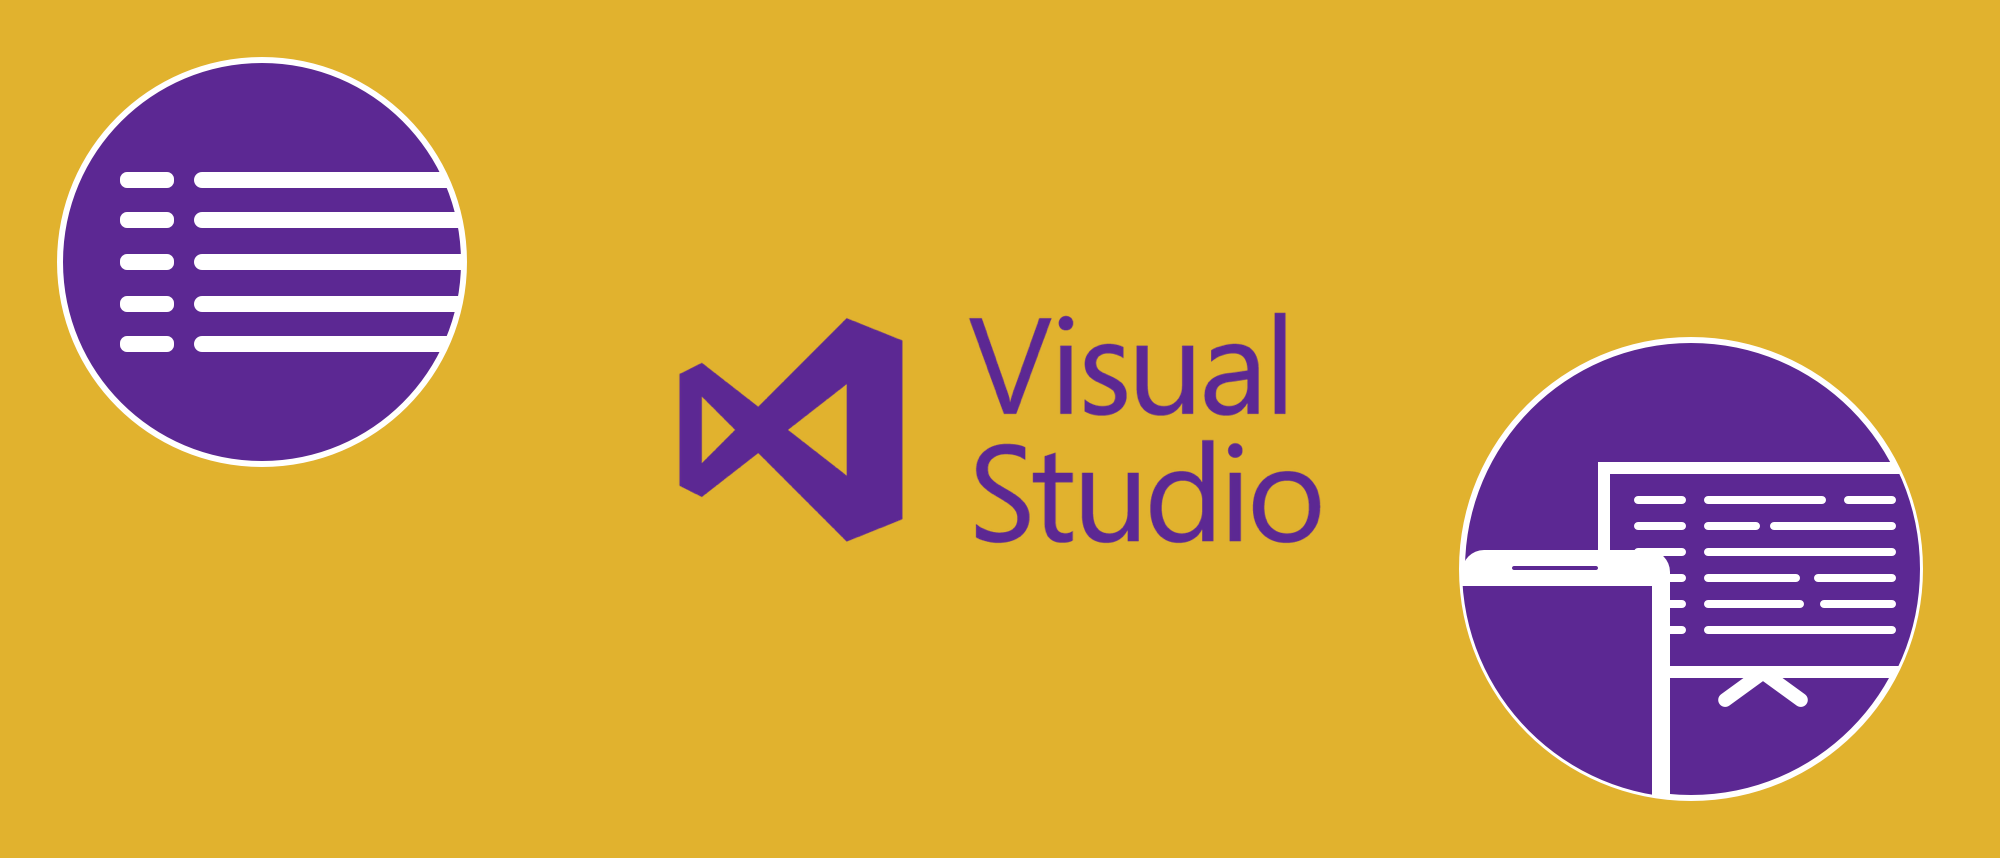 visual-studio-1